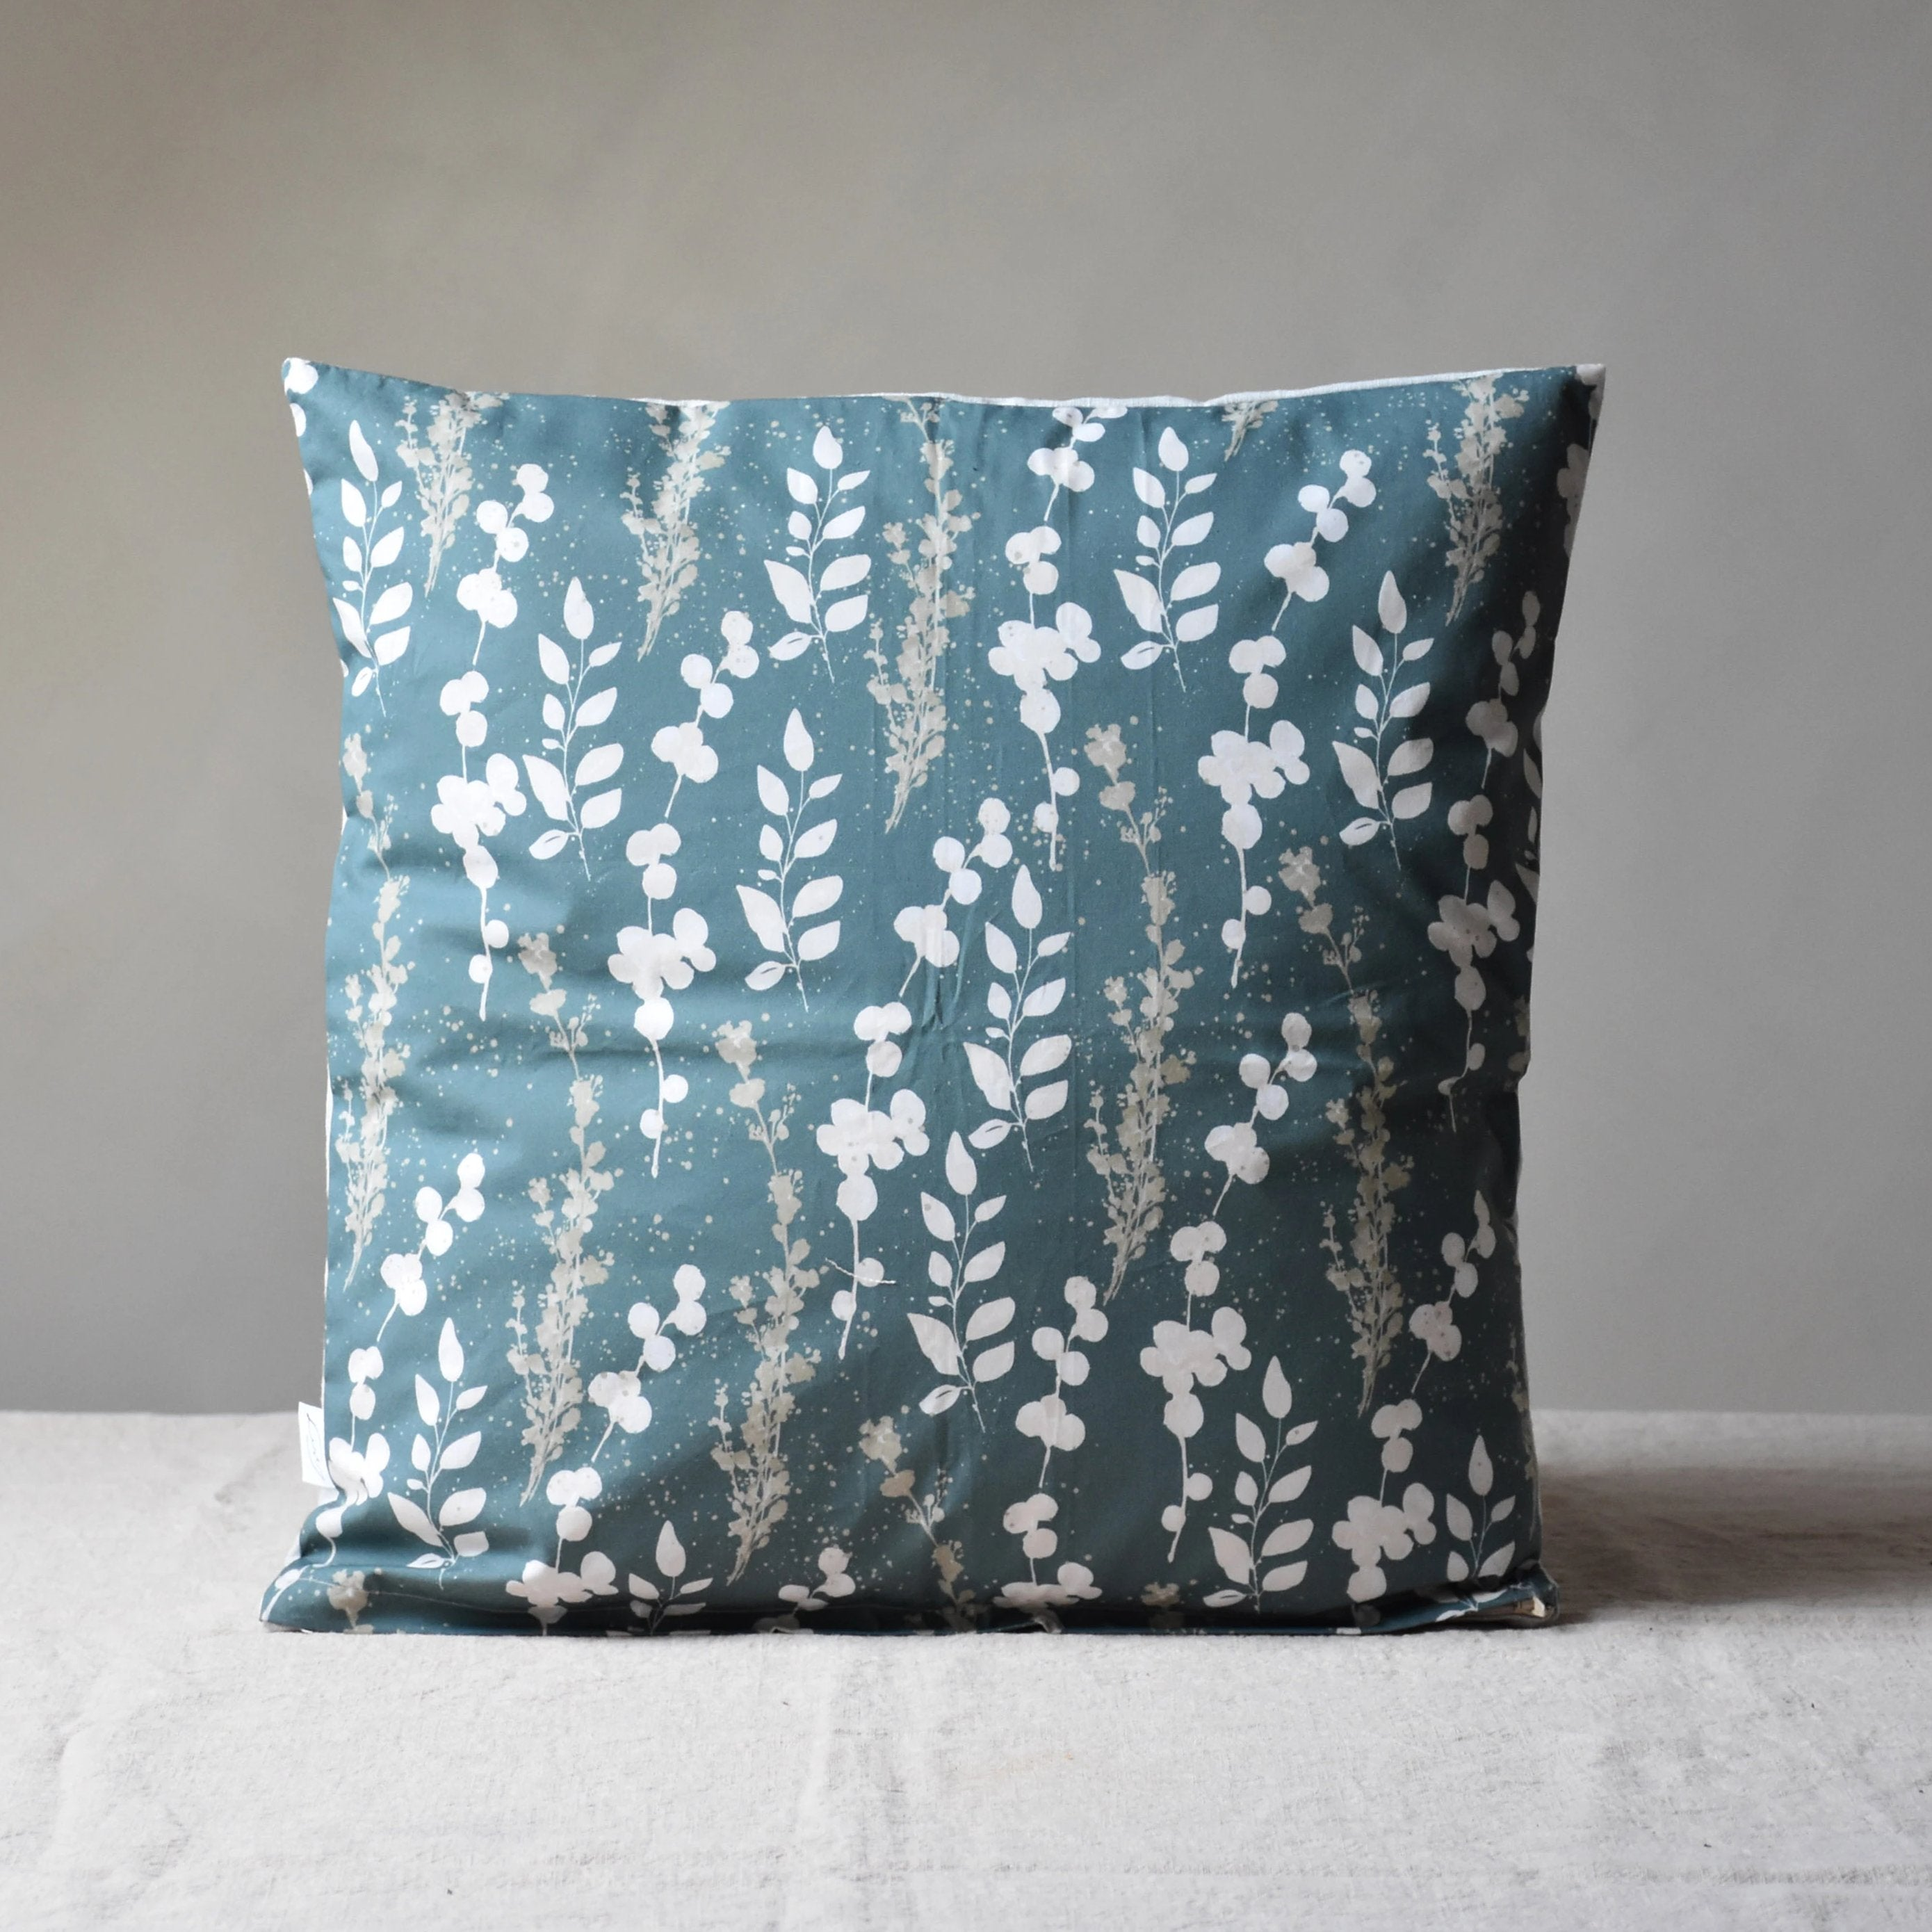 Cushion cover - Moon flowers in green - listliving